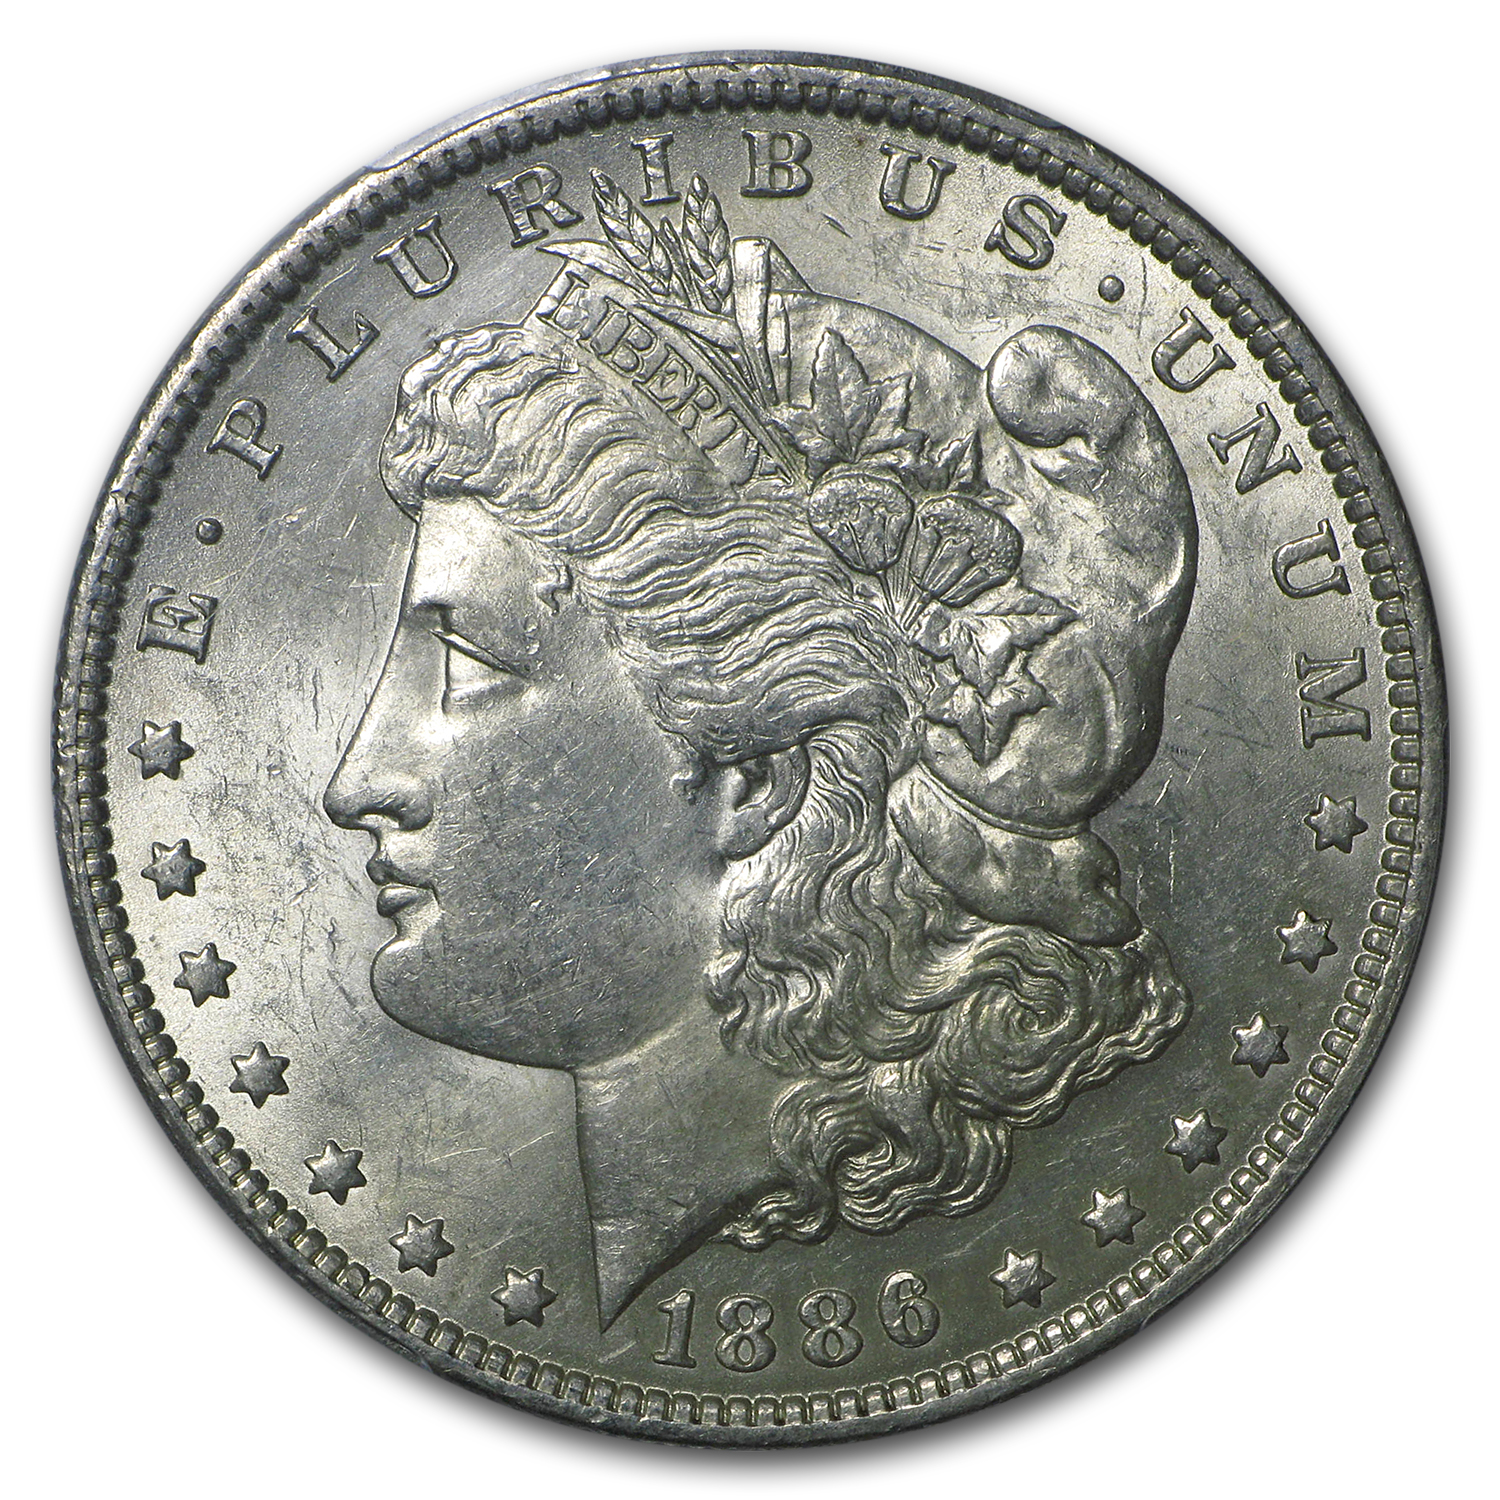 1886-O Morgan Dollar - Almost Uncirculated-58